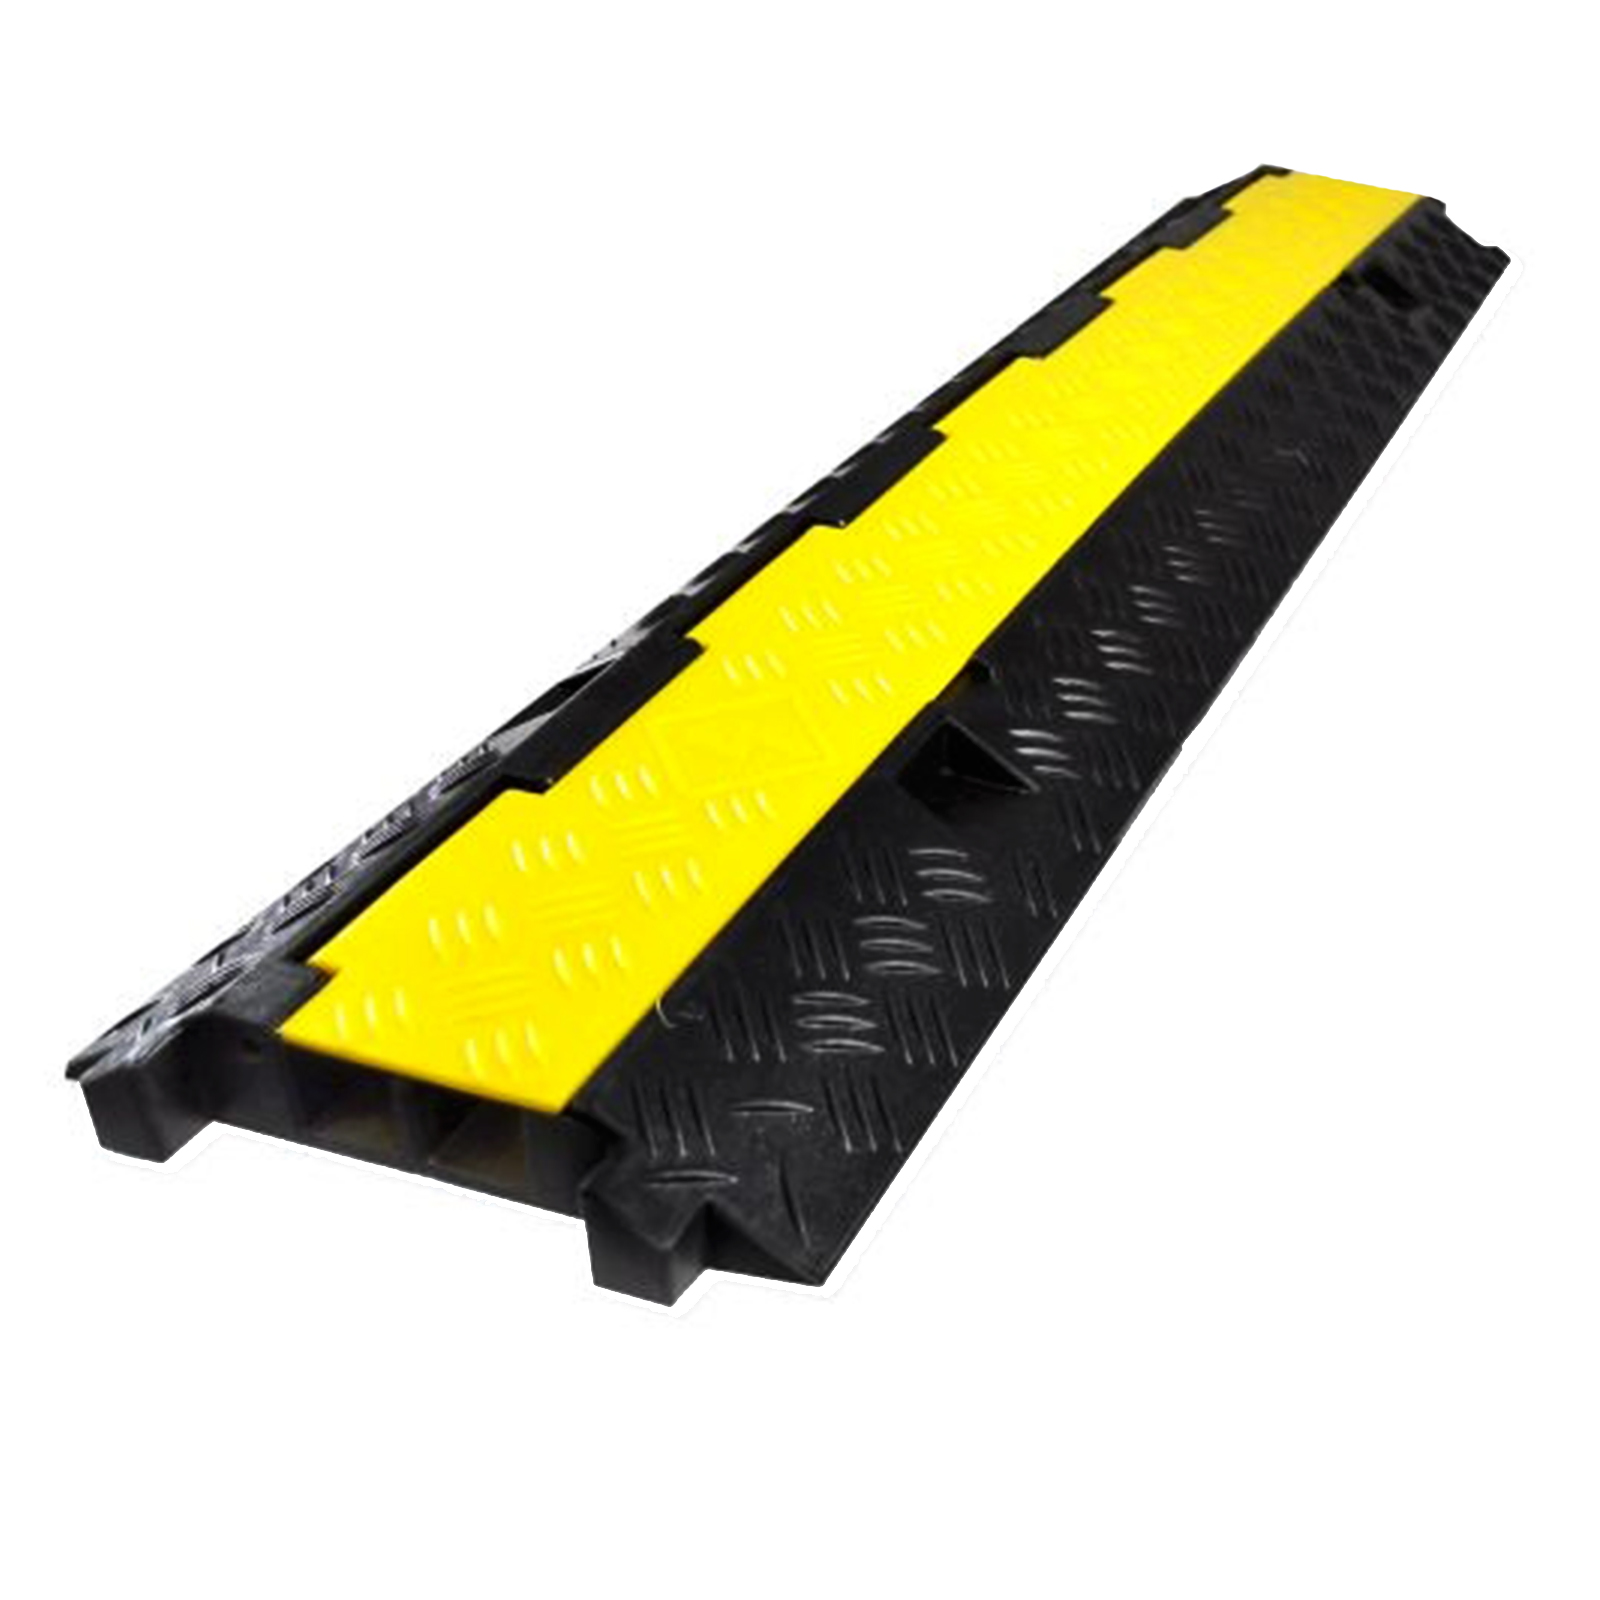 Cable Protective Cover Ramp, Cord/Wire Concealment Protection Track, Hassle-Free